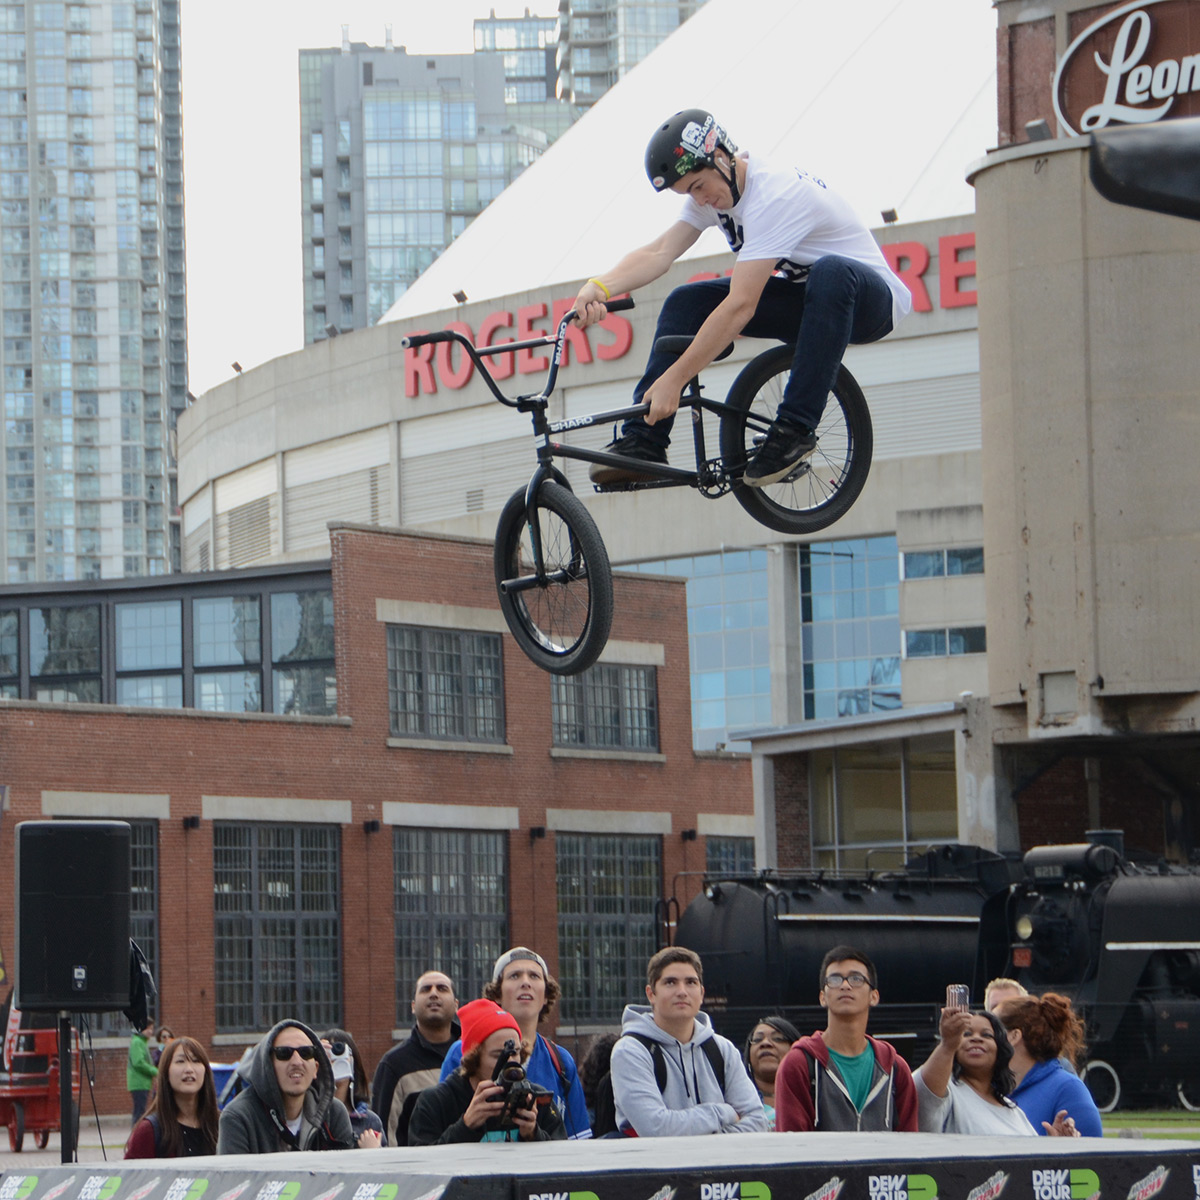 Frame Tbog at BMX Dew Tour Am Series in Toronto